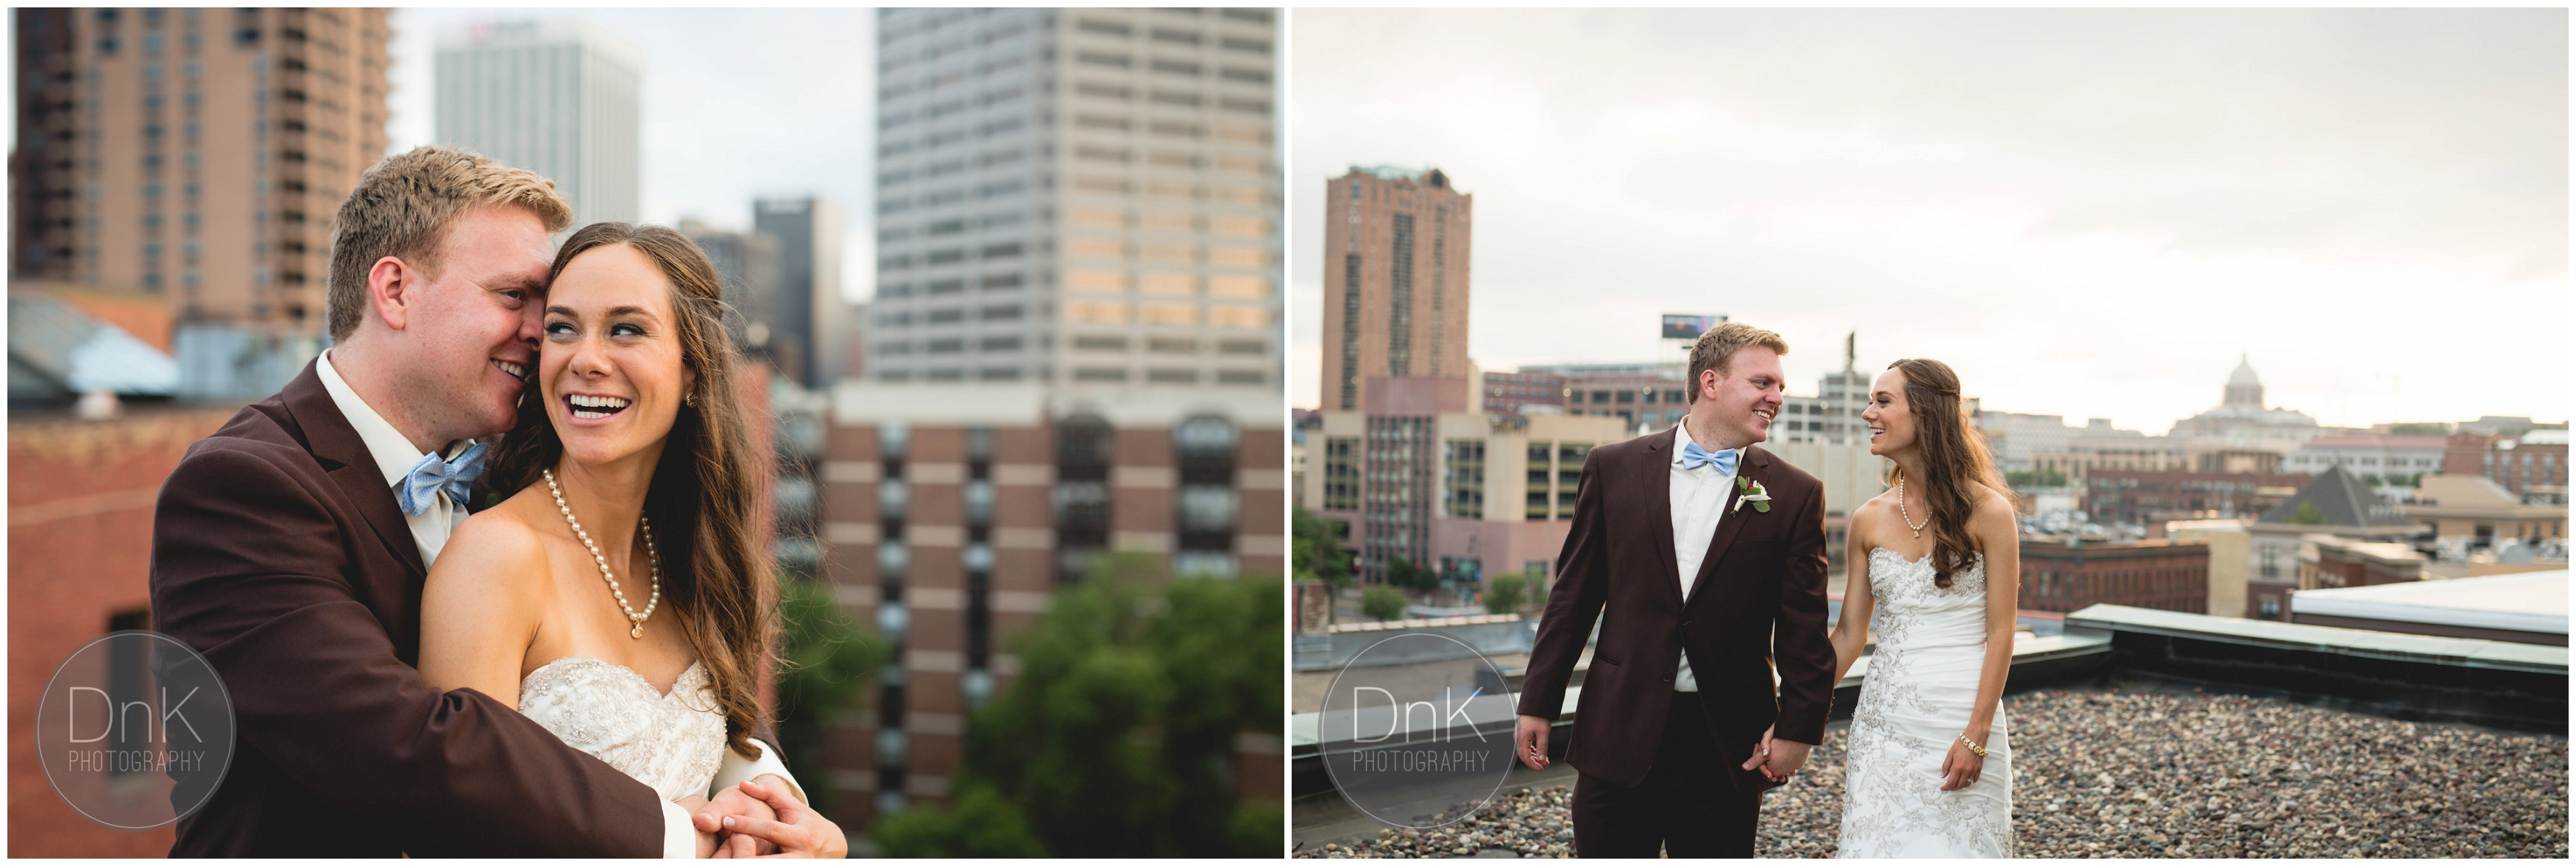 36 - 413 on Wacouta Wedding Pictures Rooftop Wedding Pictures Wedding Photographer Minneapolis